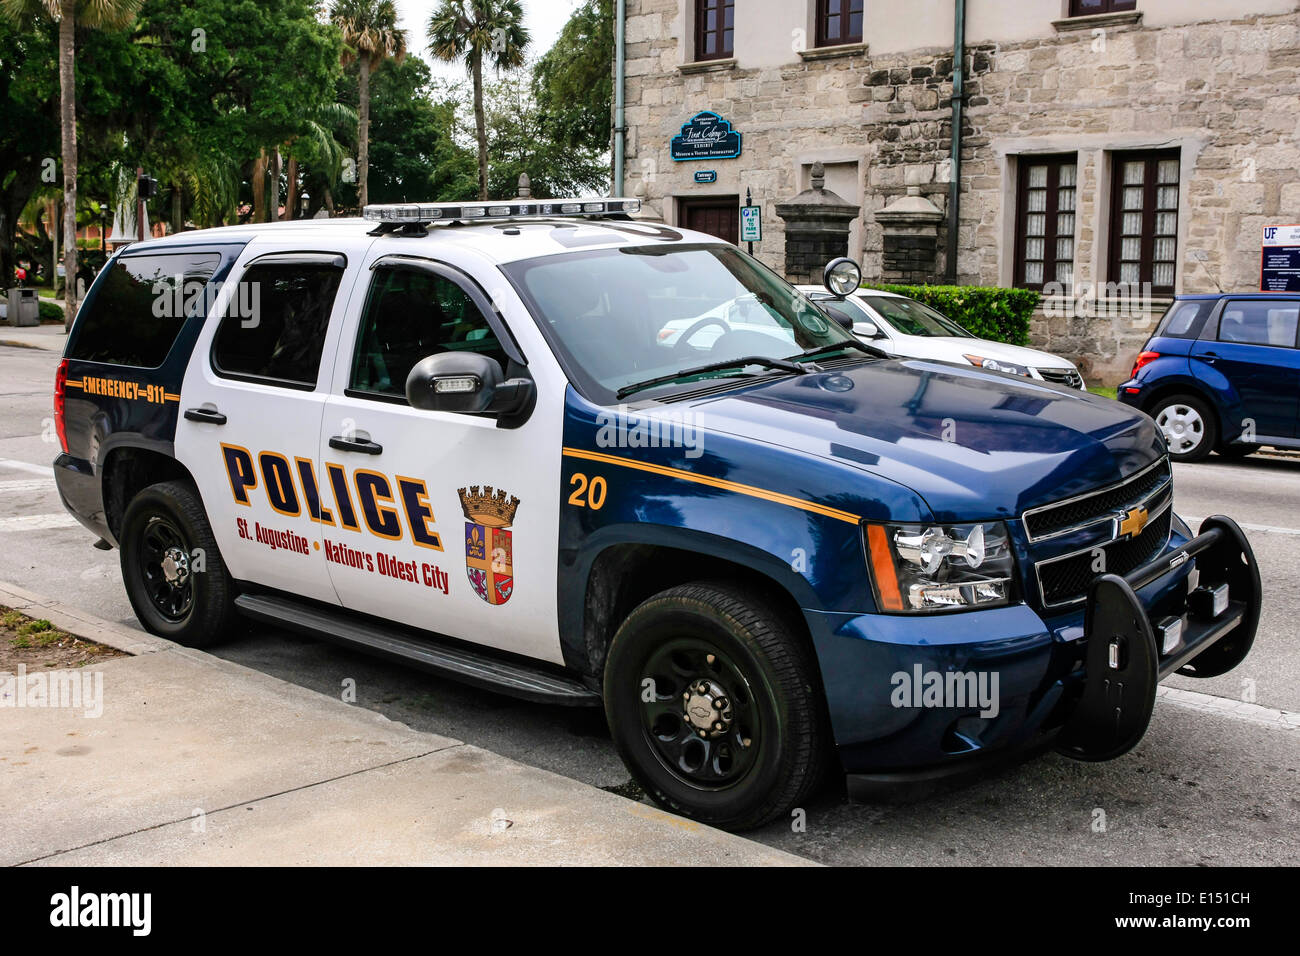 a chevy police cruiser of the st augustine police dept florida stock photo royalty free image. Black Bedroom Furniture Sets. Home Design Ideas